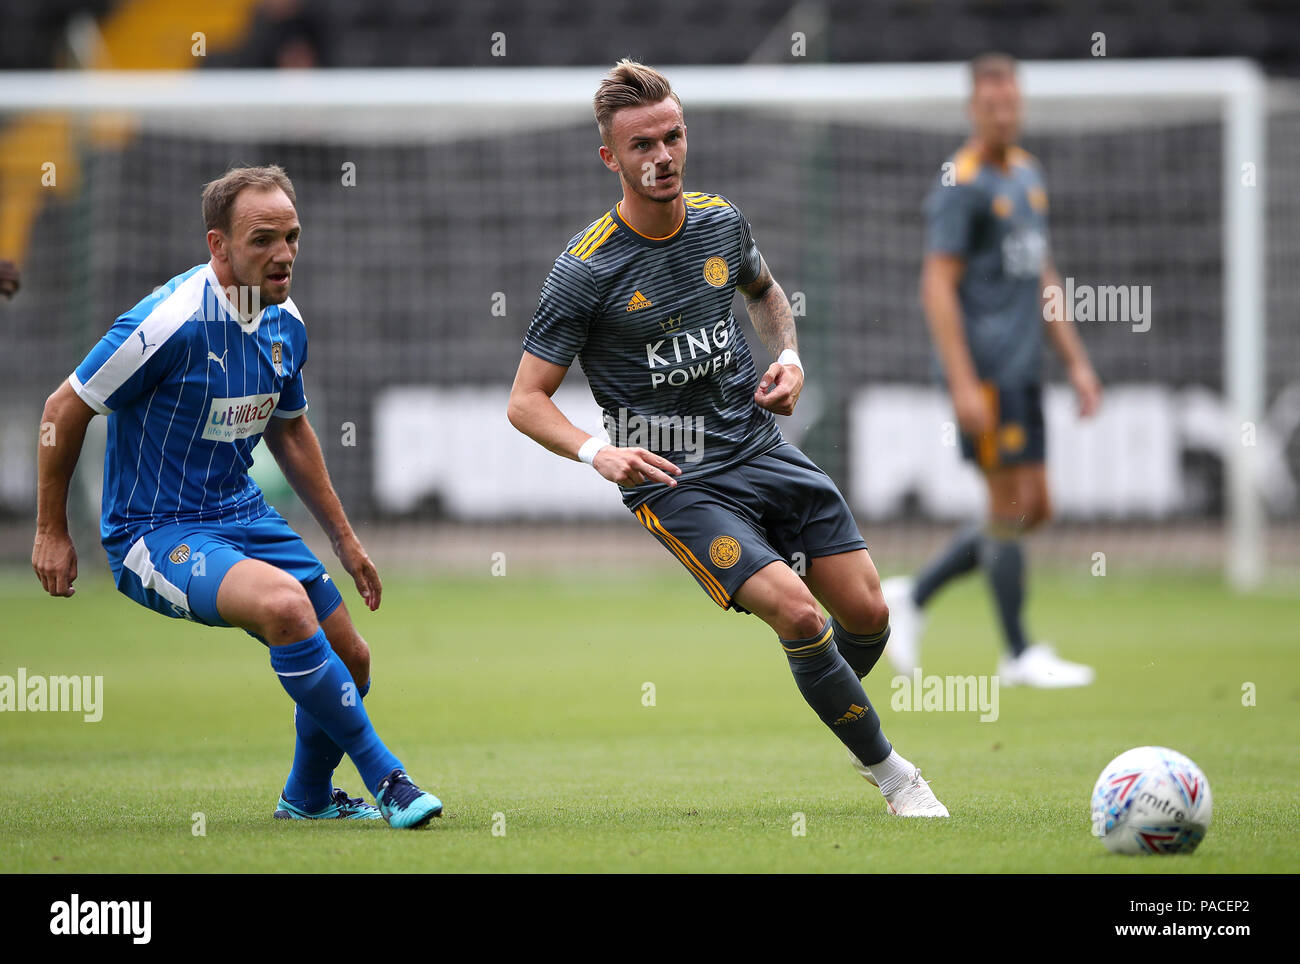 Leicester City's James Maddison (right) and Notts County's David Vaughan in action during a pre season friendly match at Meadow Lane, Nottingham. - Stock Image